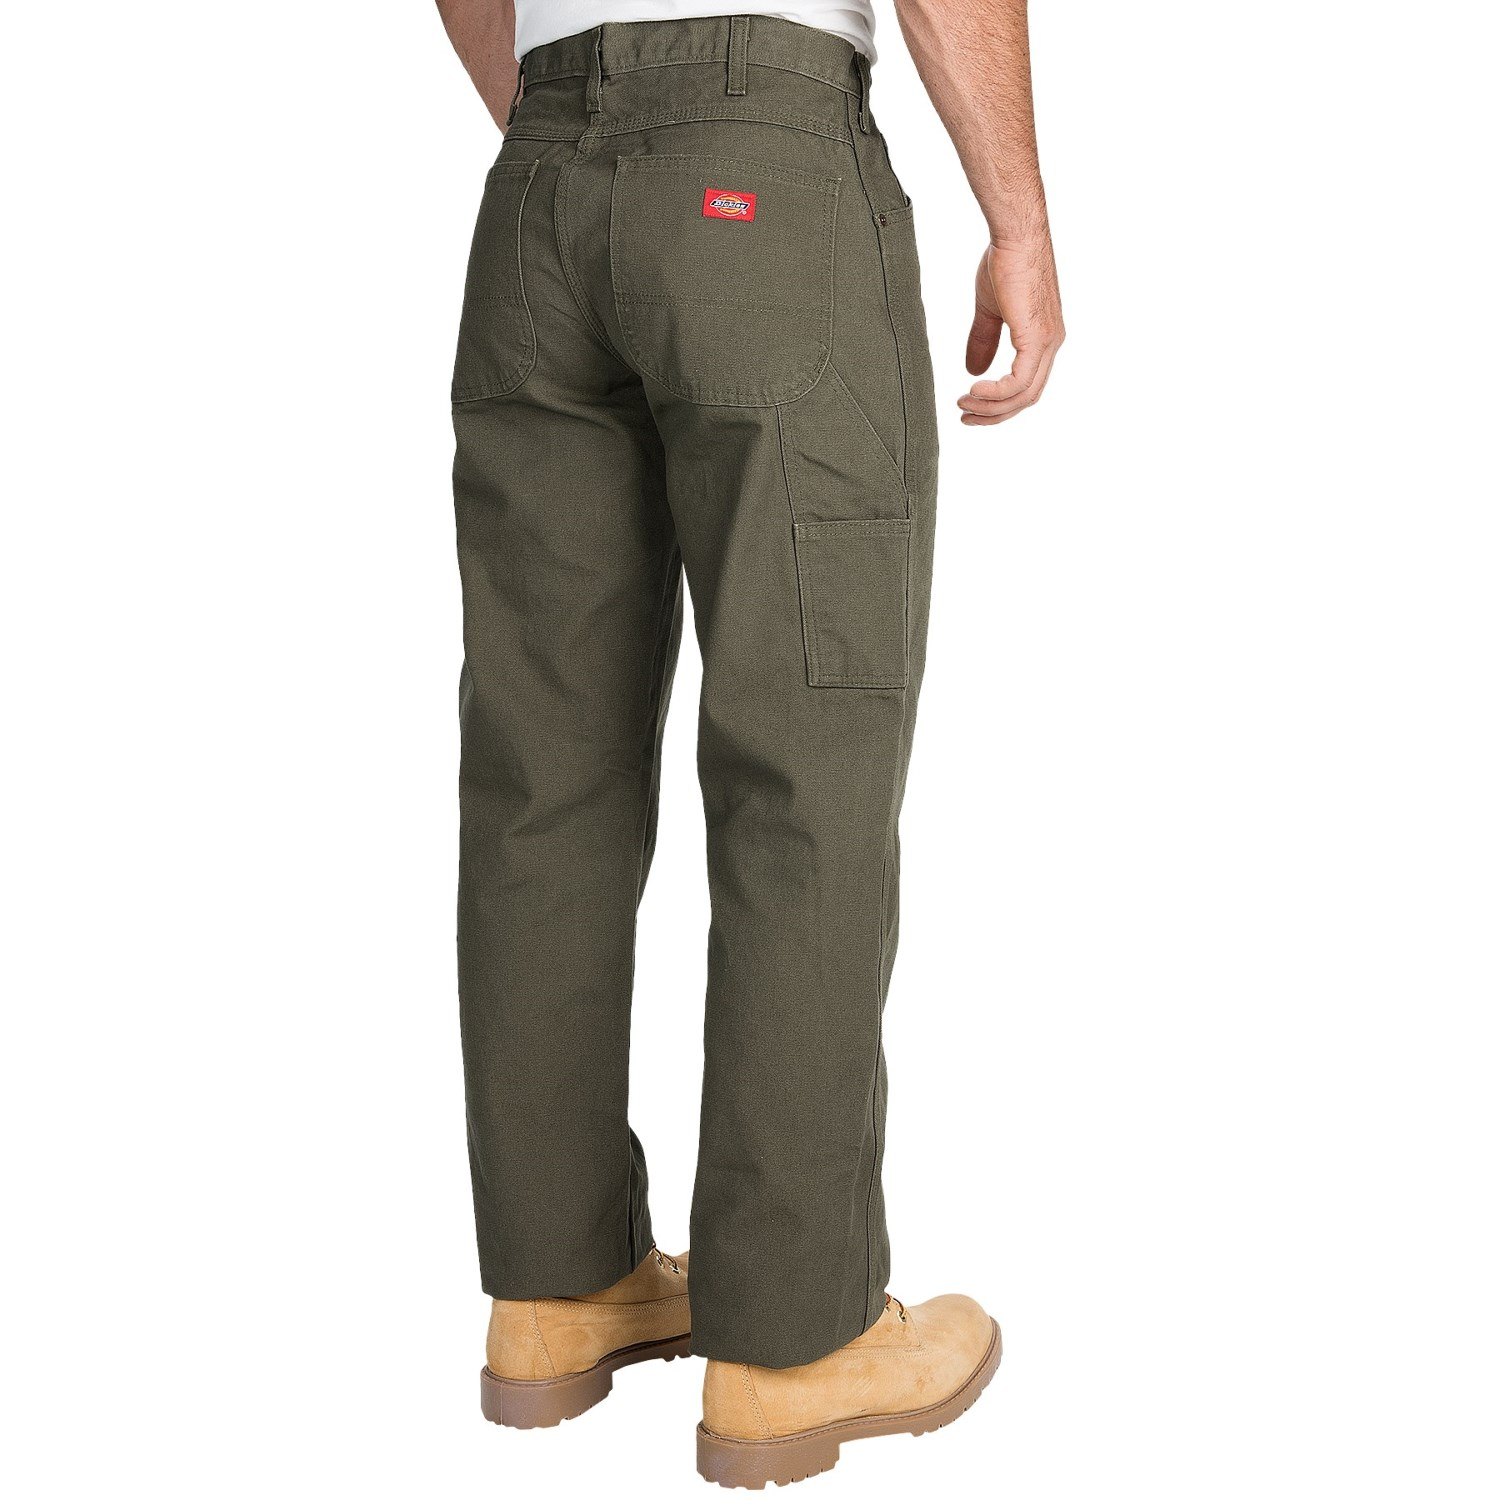 Dickies Stripe Overalls, Men and Women's Overalls, Jeans, Painter's Pants. Denim shirt.. Coveralls, cargo shorts, flannel lined jeans, pants.